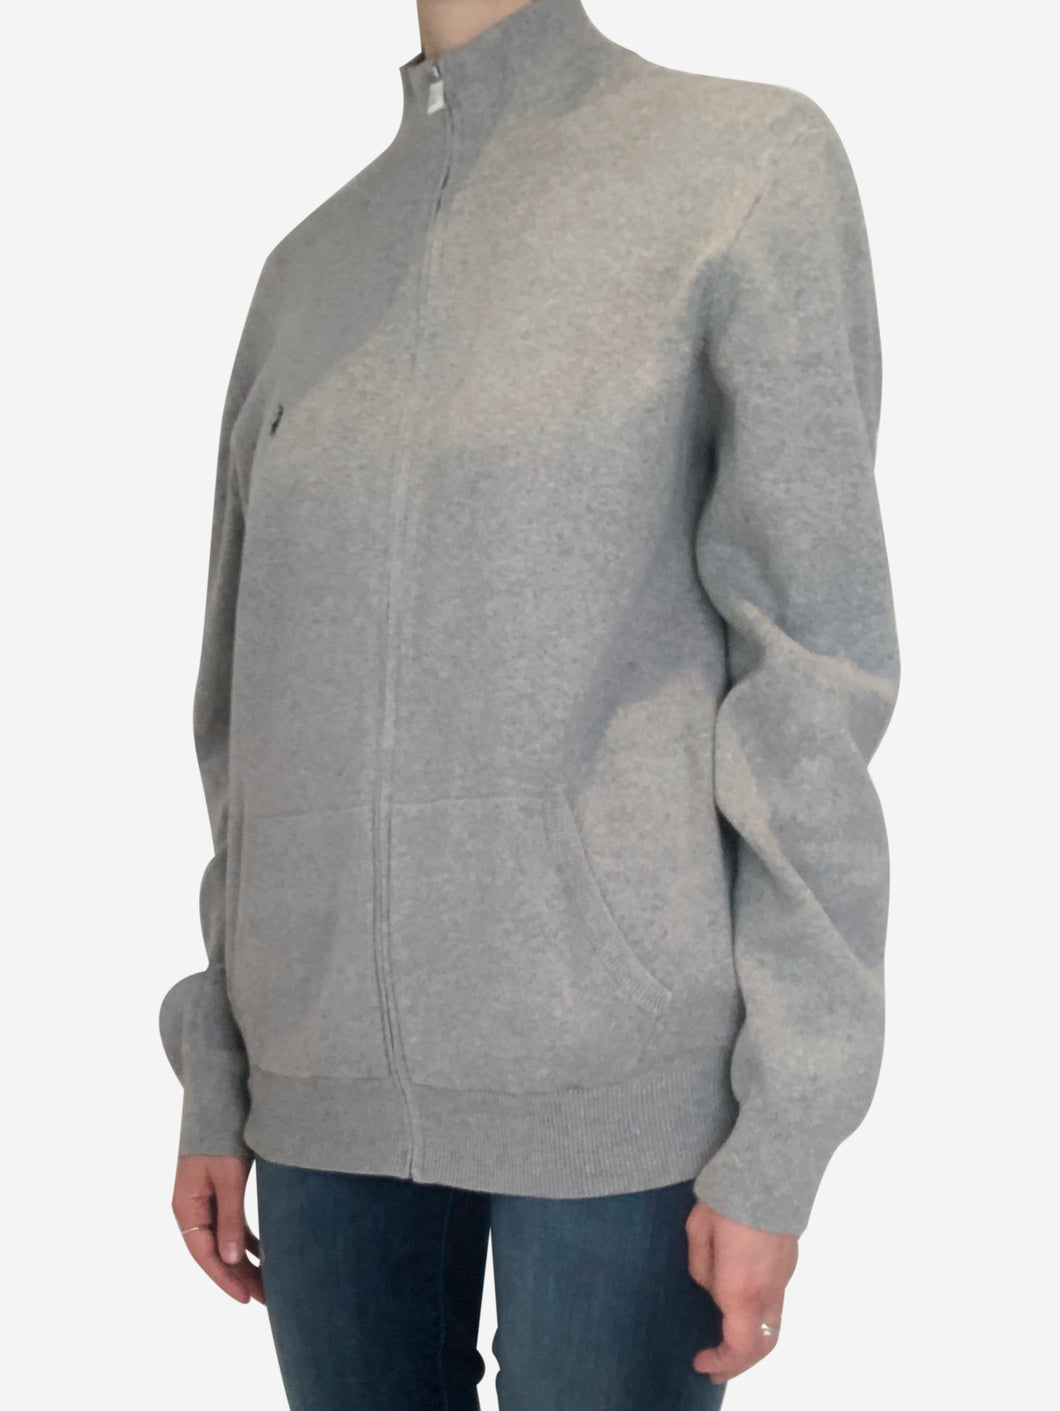 Grey Ralph Lauren Cardigan, M